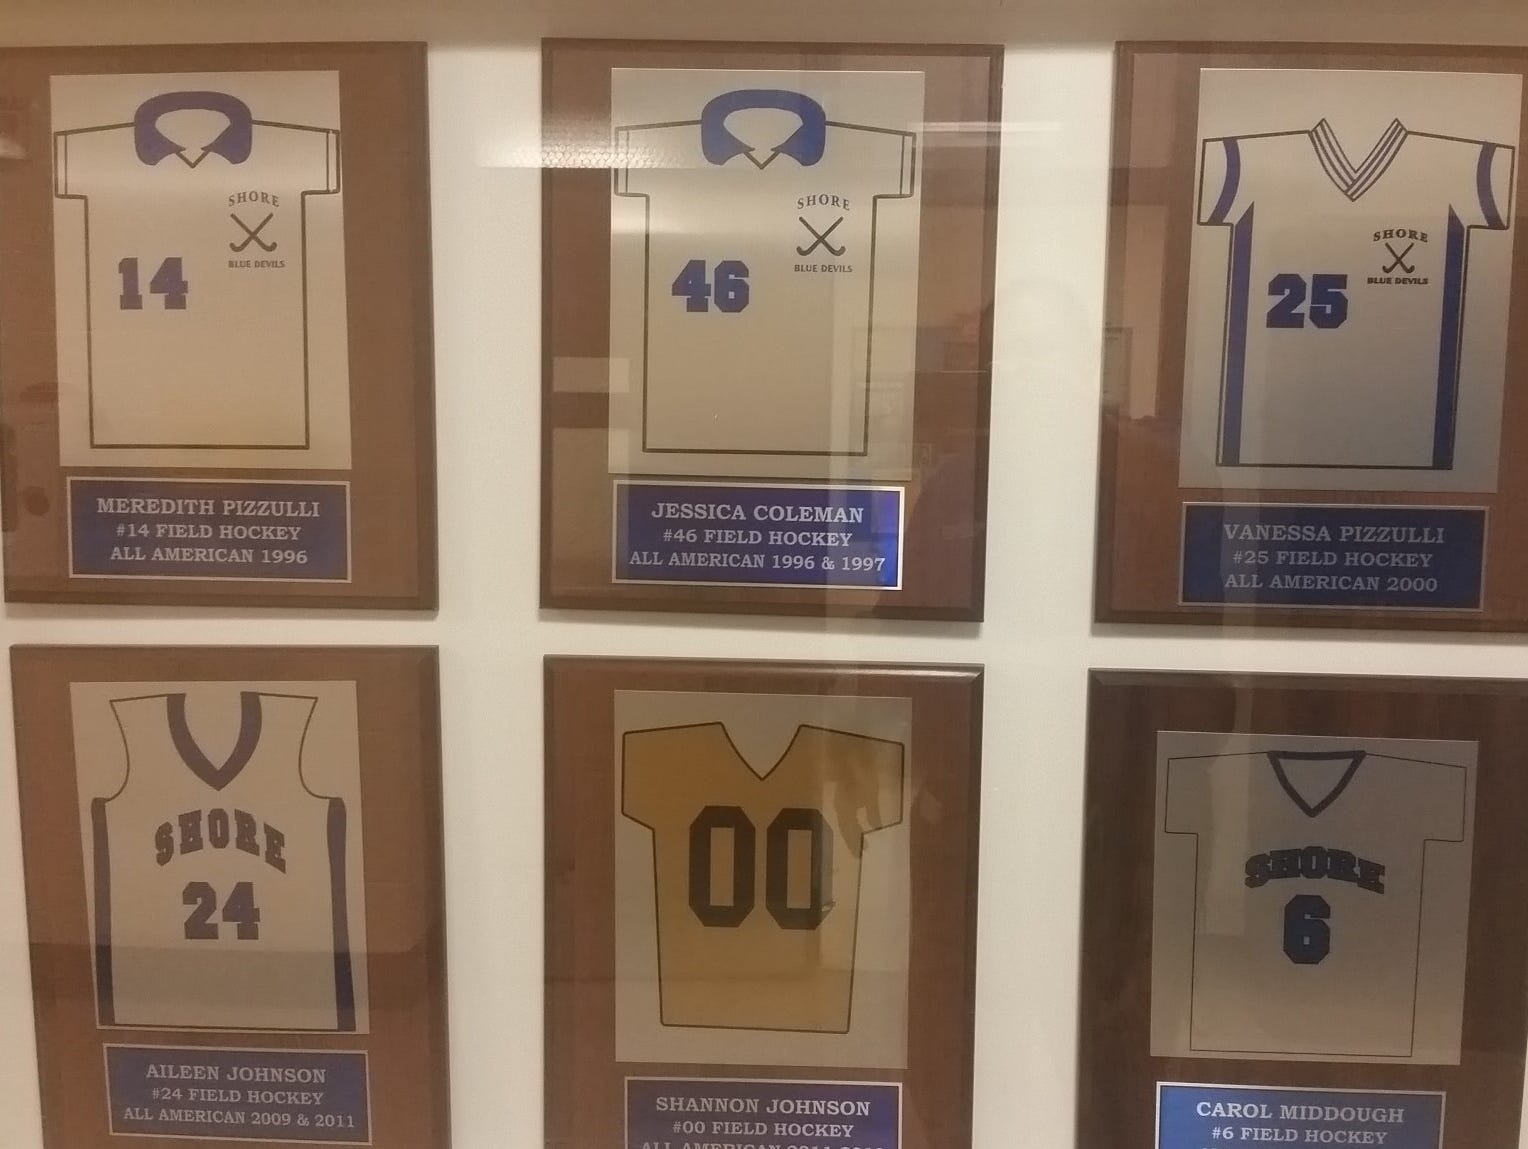 The Wall of Fame at Shore Regional is full of field hockey greats.